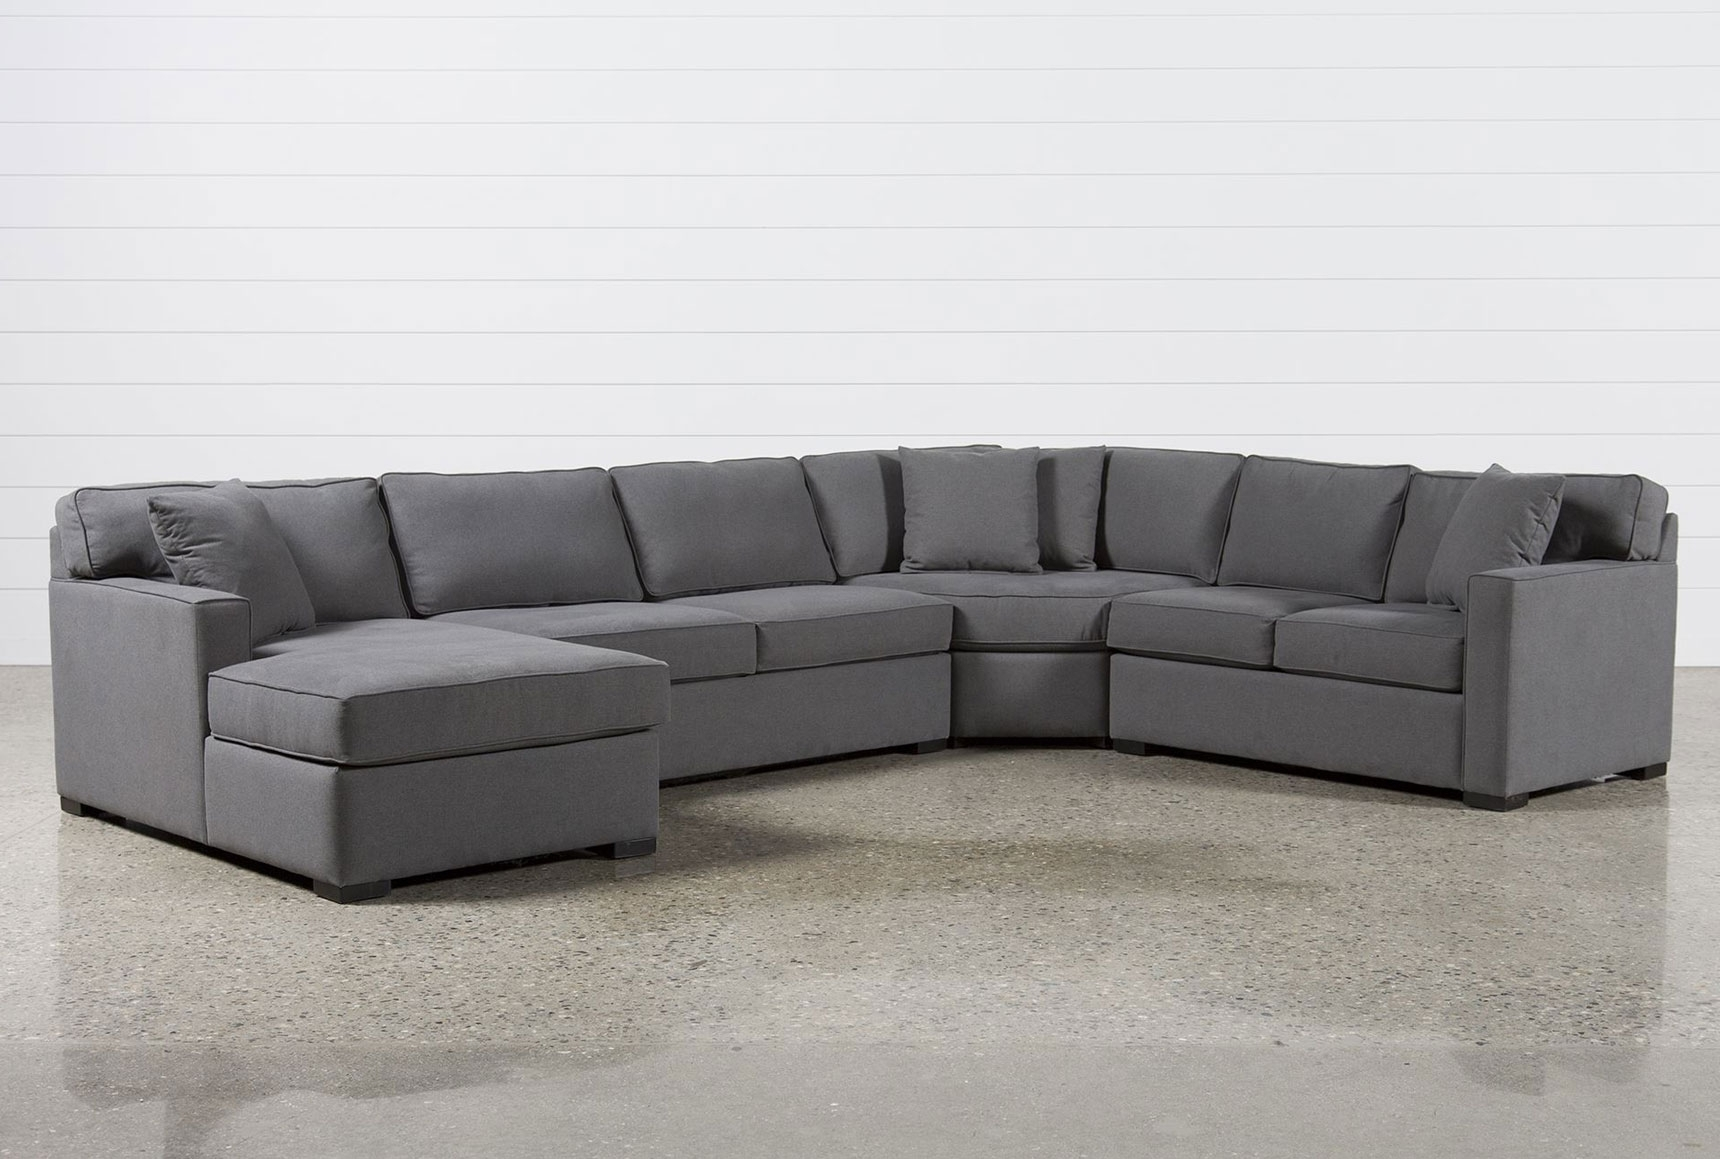 Sectional Sofa: Recommended 45 Degree Sectional Sofa 135 Degree With Regard To Trendy Everett Wa Sectional Sofas (View 12 of 15)